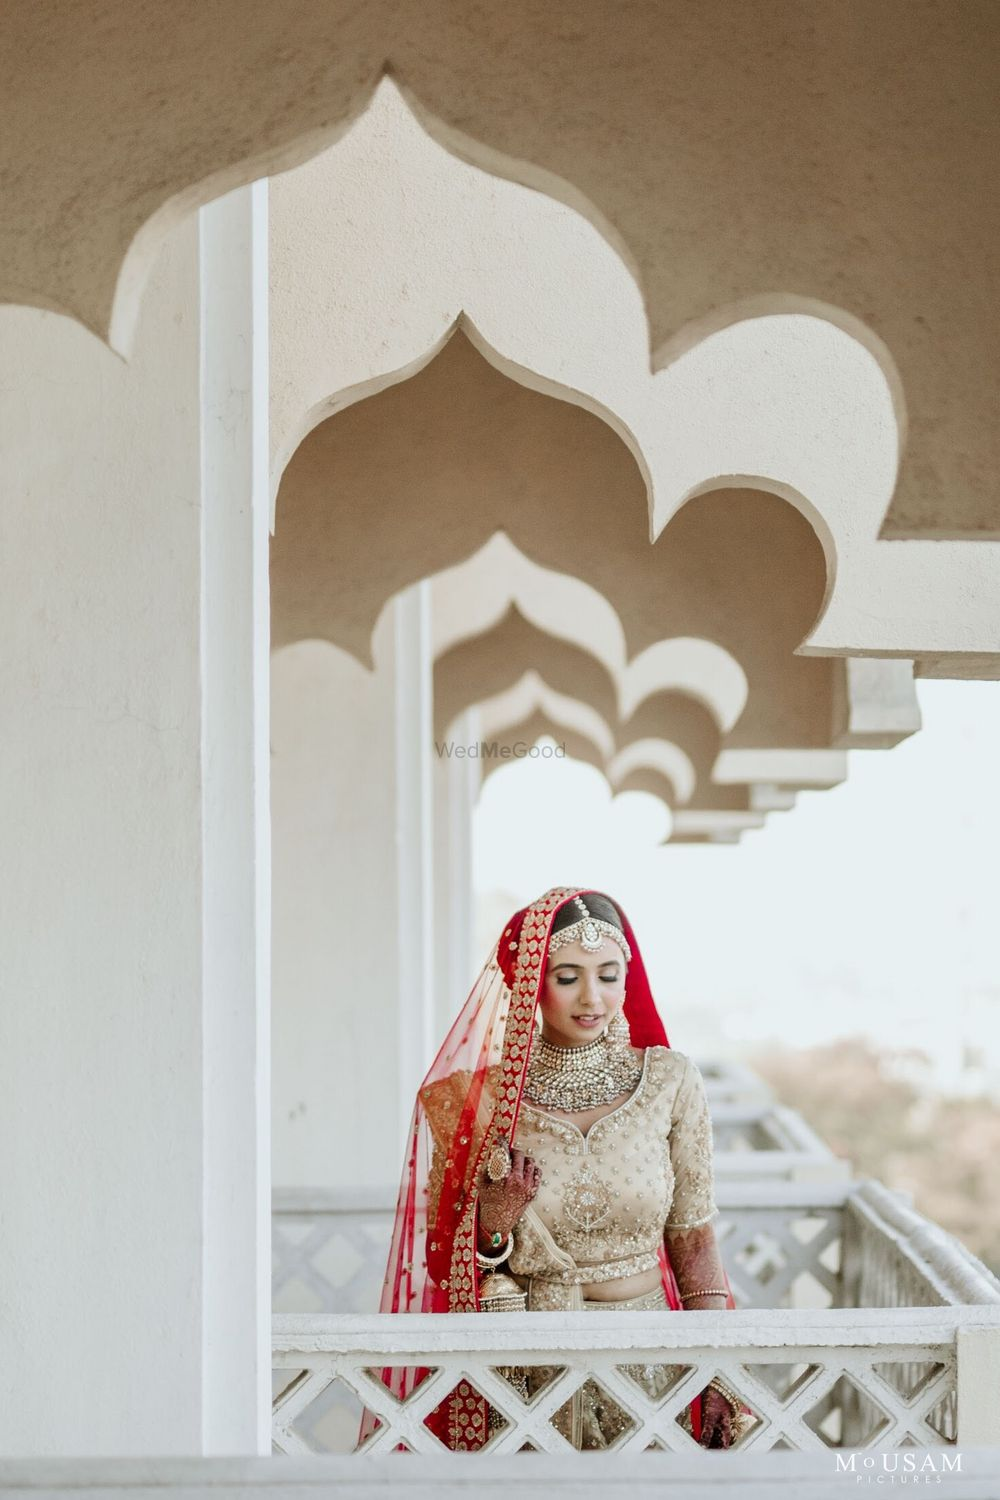 Photo From Yash & Vishakha - By Mousam Pictures